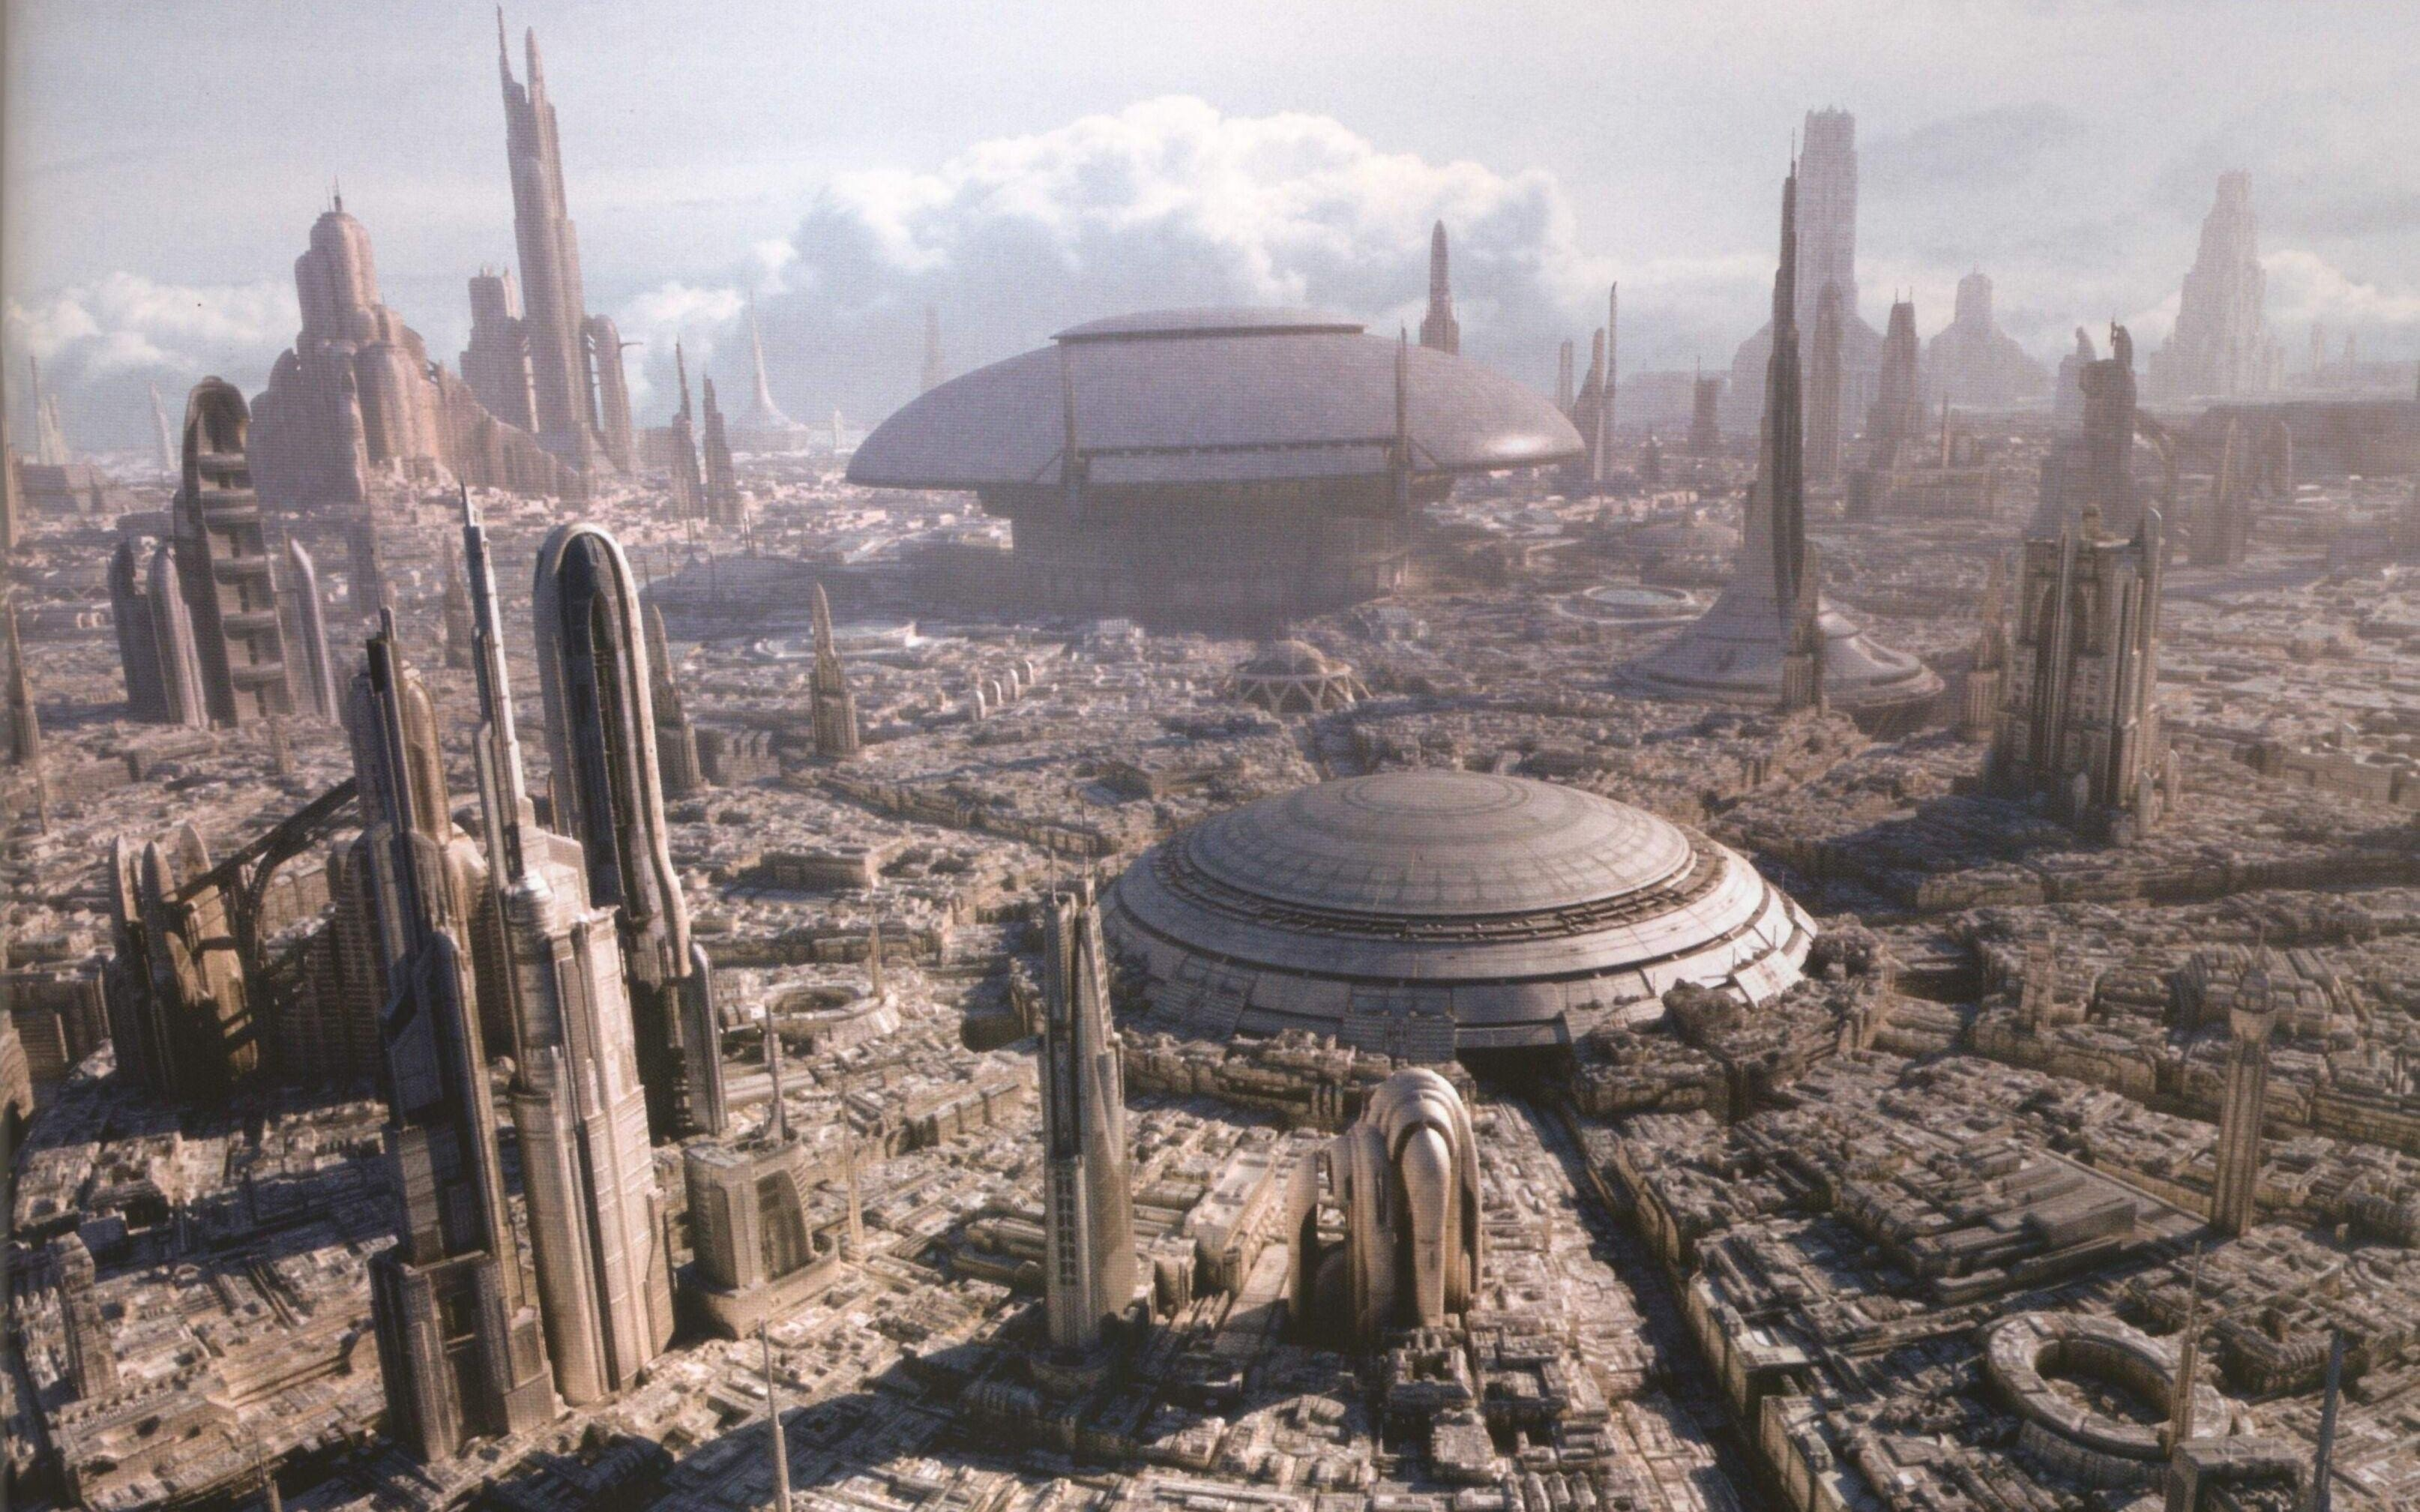 Alienigena, Mobile, Scifi,ciudad,download, Hd Tumblr - Star Wars Coruscant 4k , HD Wallpaper & Backgrounds